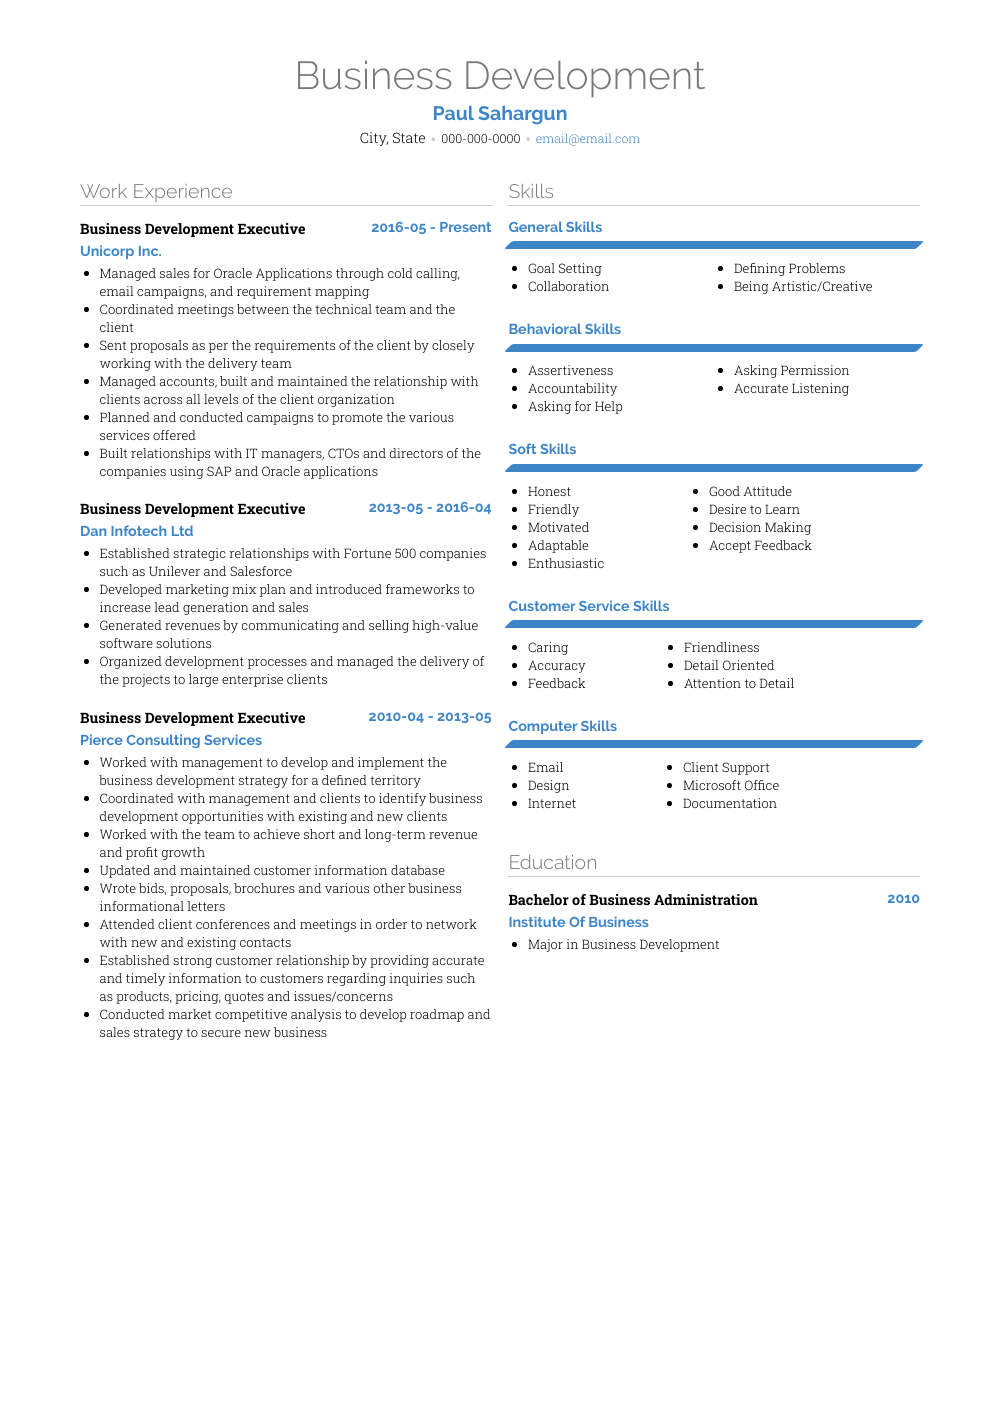 Business Development Resume Sample and Template